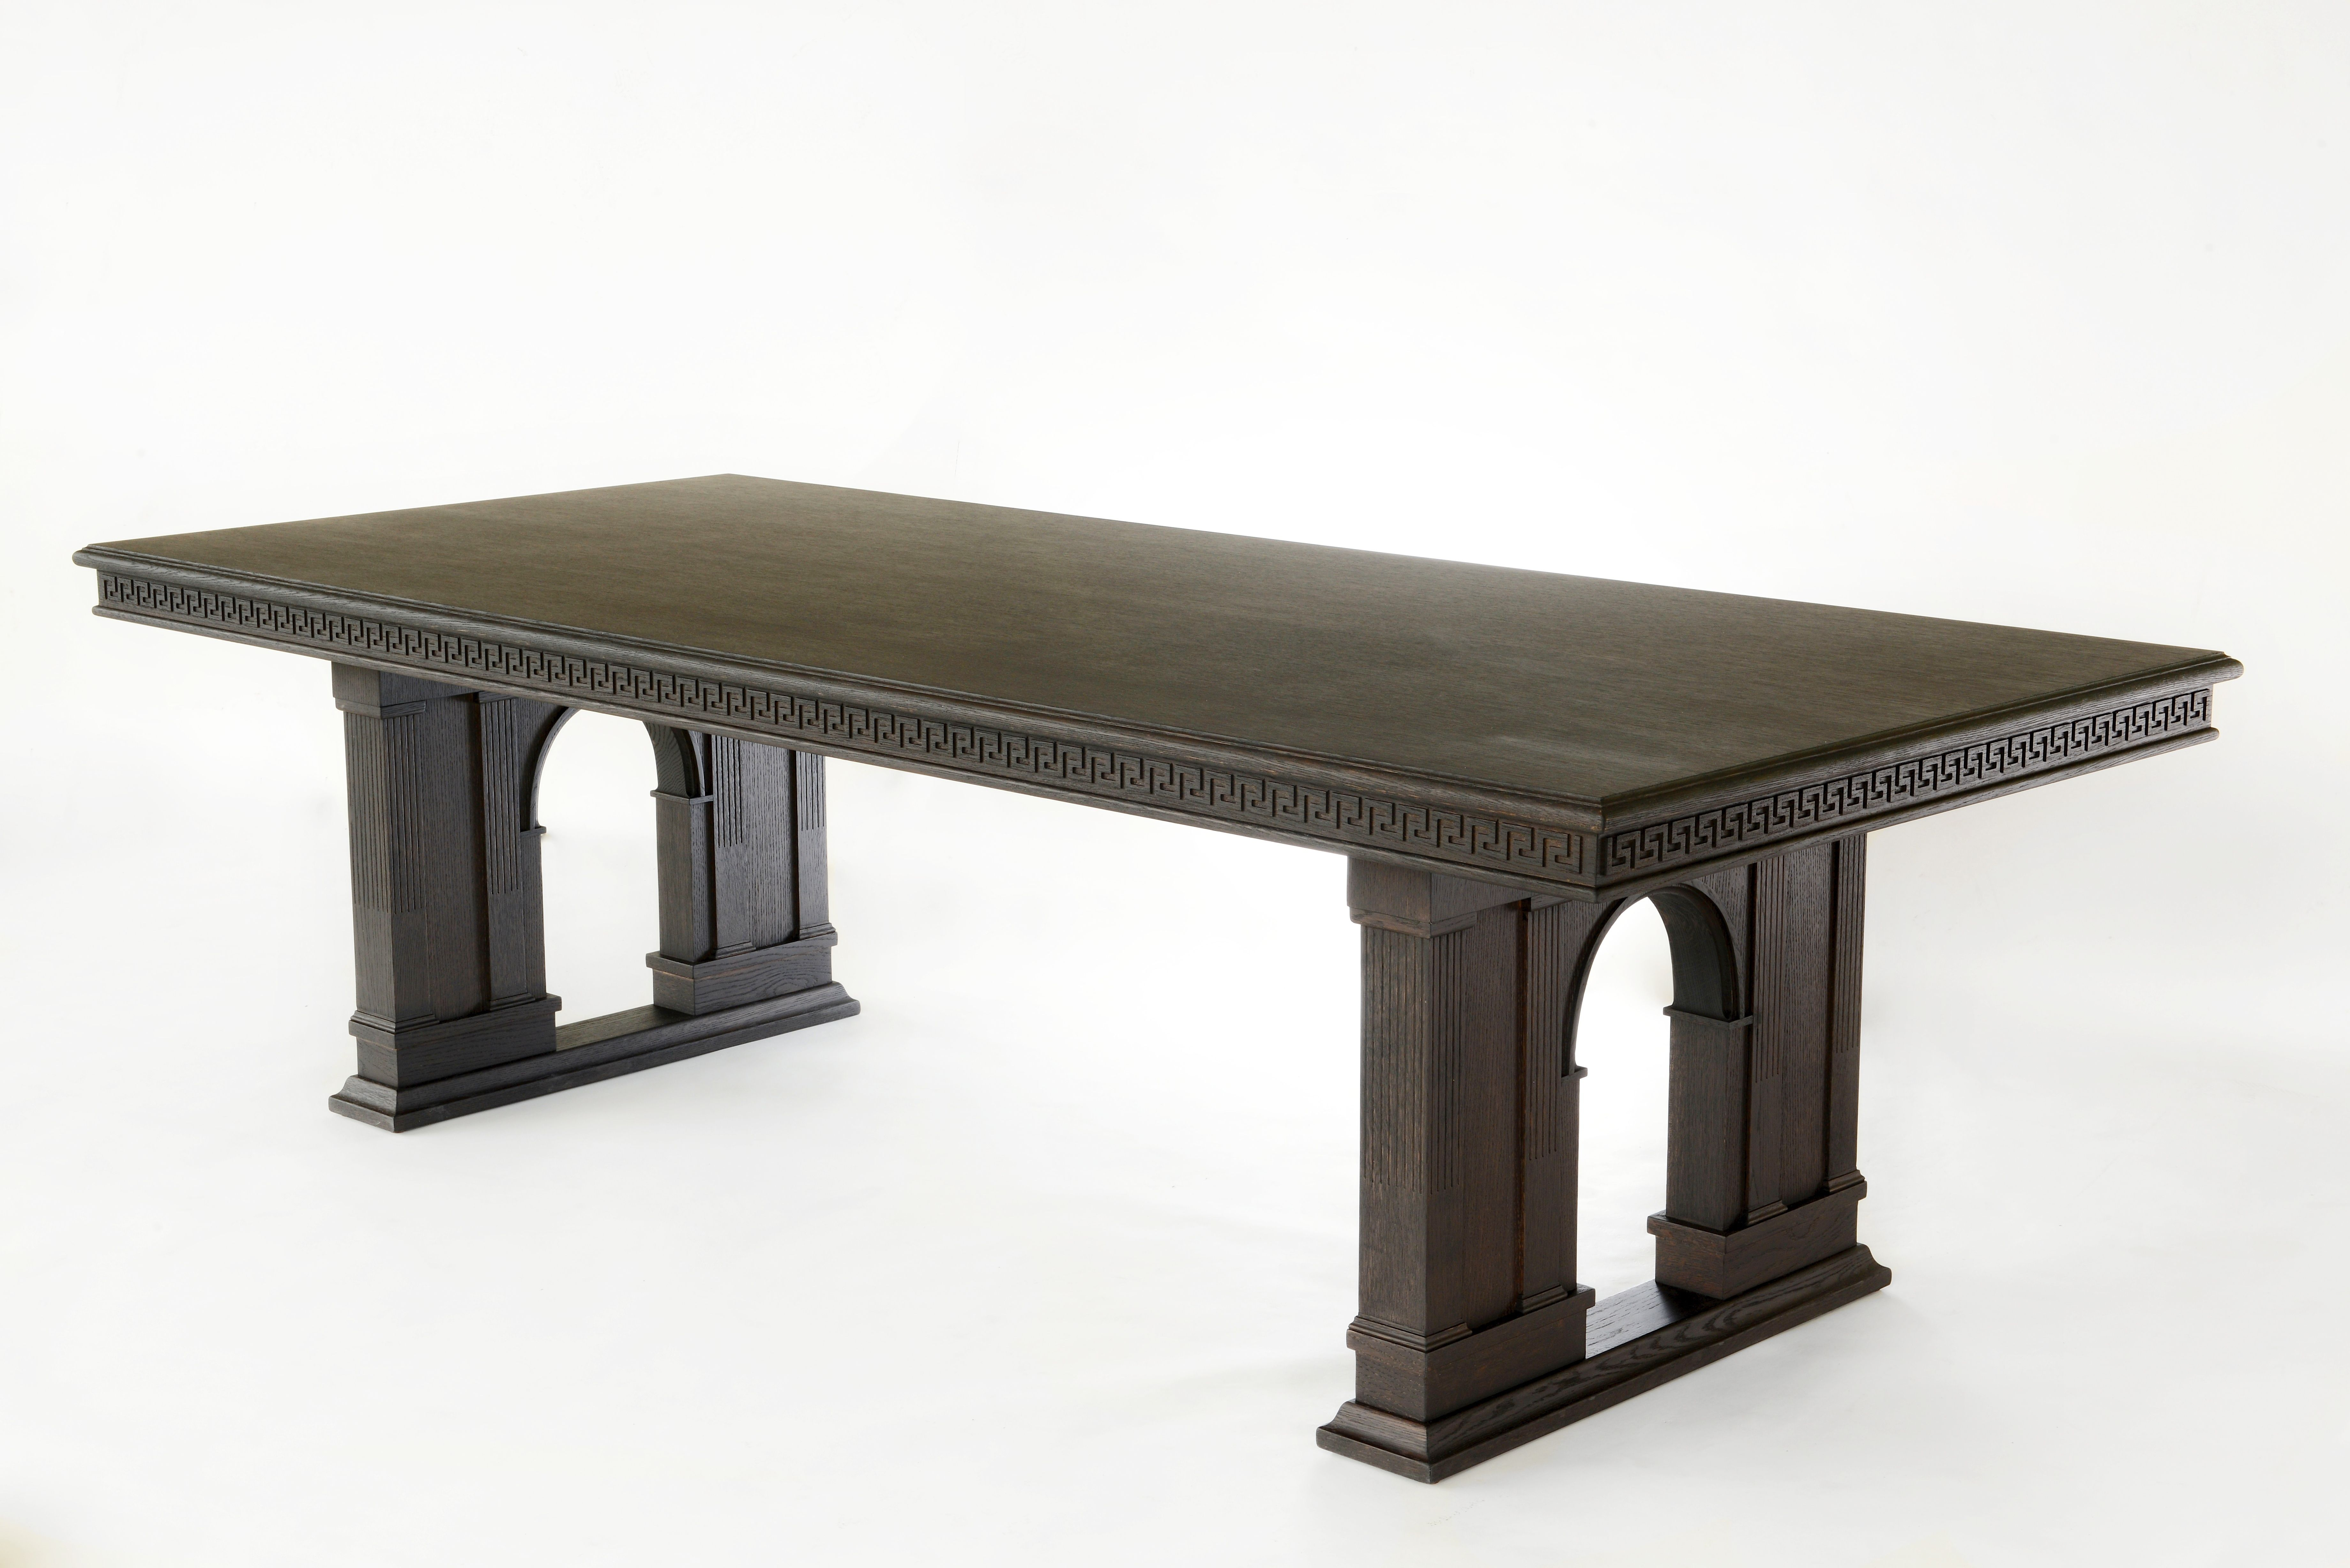 The Via Ges249 dining table from the new Versace Home  : 3b09df6f927264b5f6b52322860aa811 from www.pinterest.com size 7360 x 4912 jpeg 4429kB